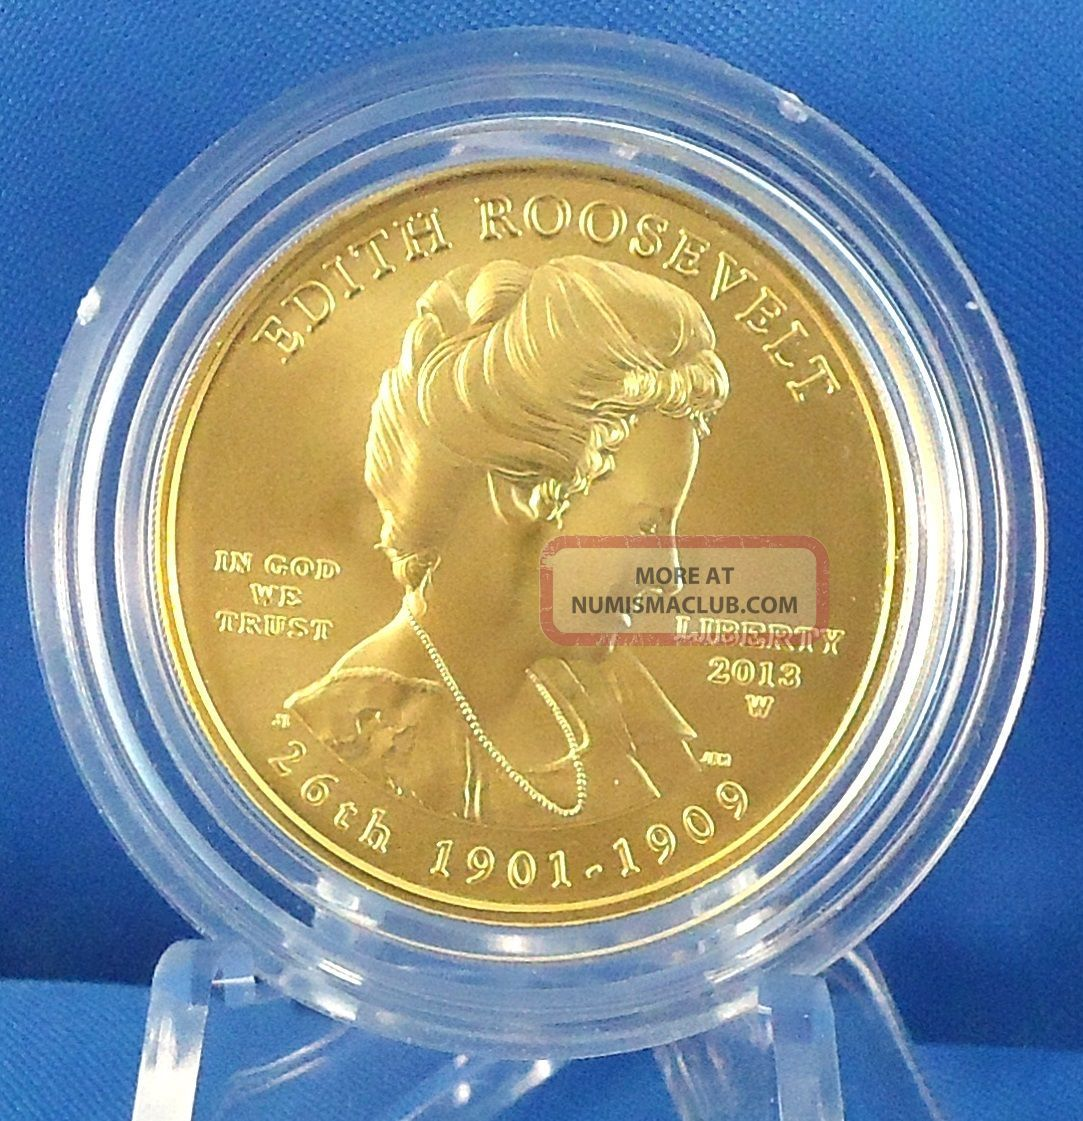 2013 Edith Roosevelt First Spouse Series 1/2 Oz.  Gold Specimen Uncirculated Coin Gold photo